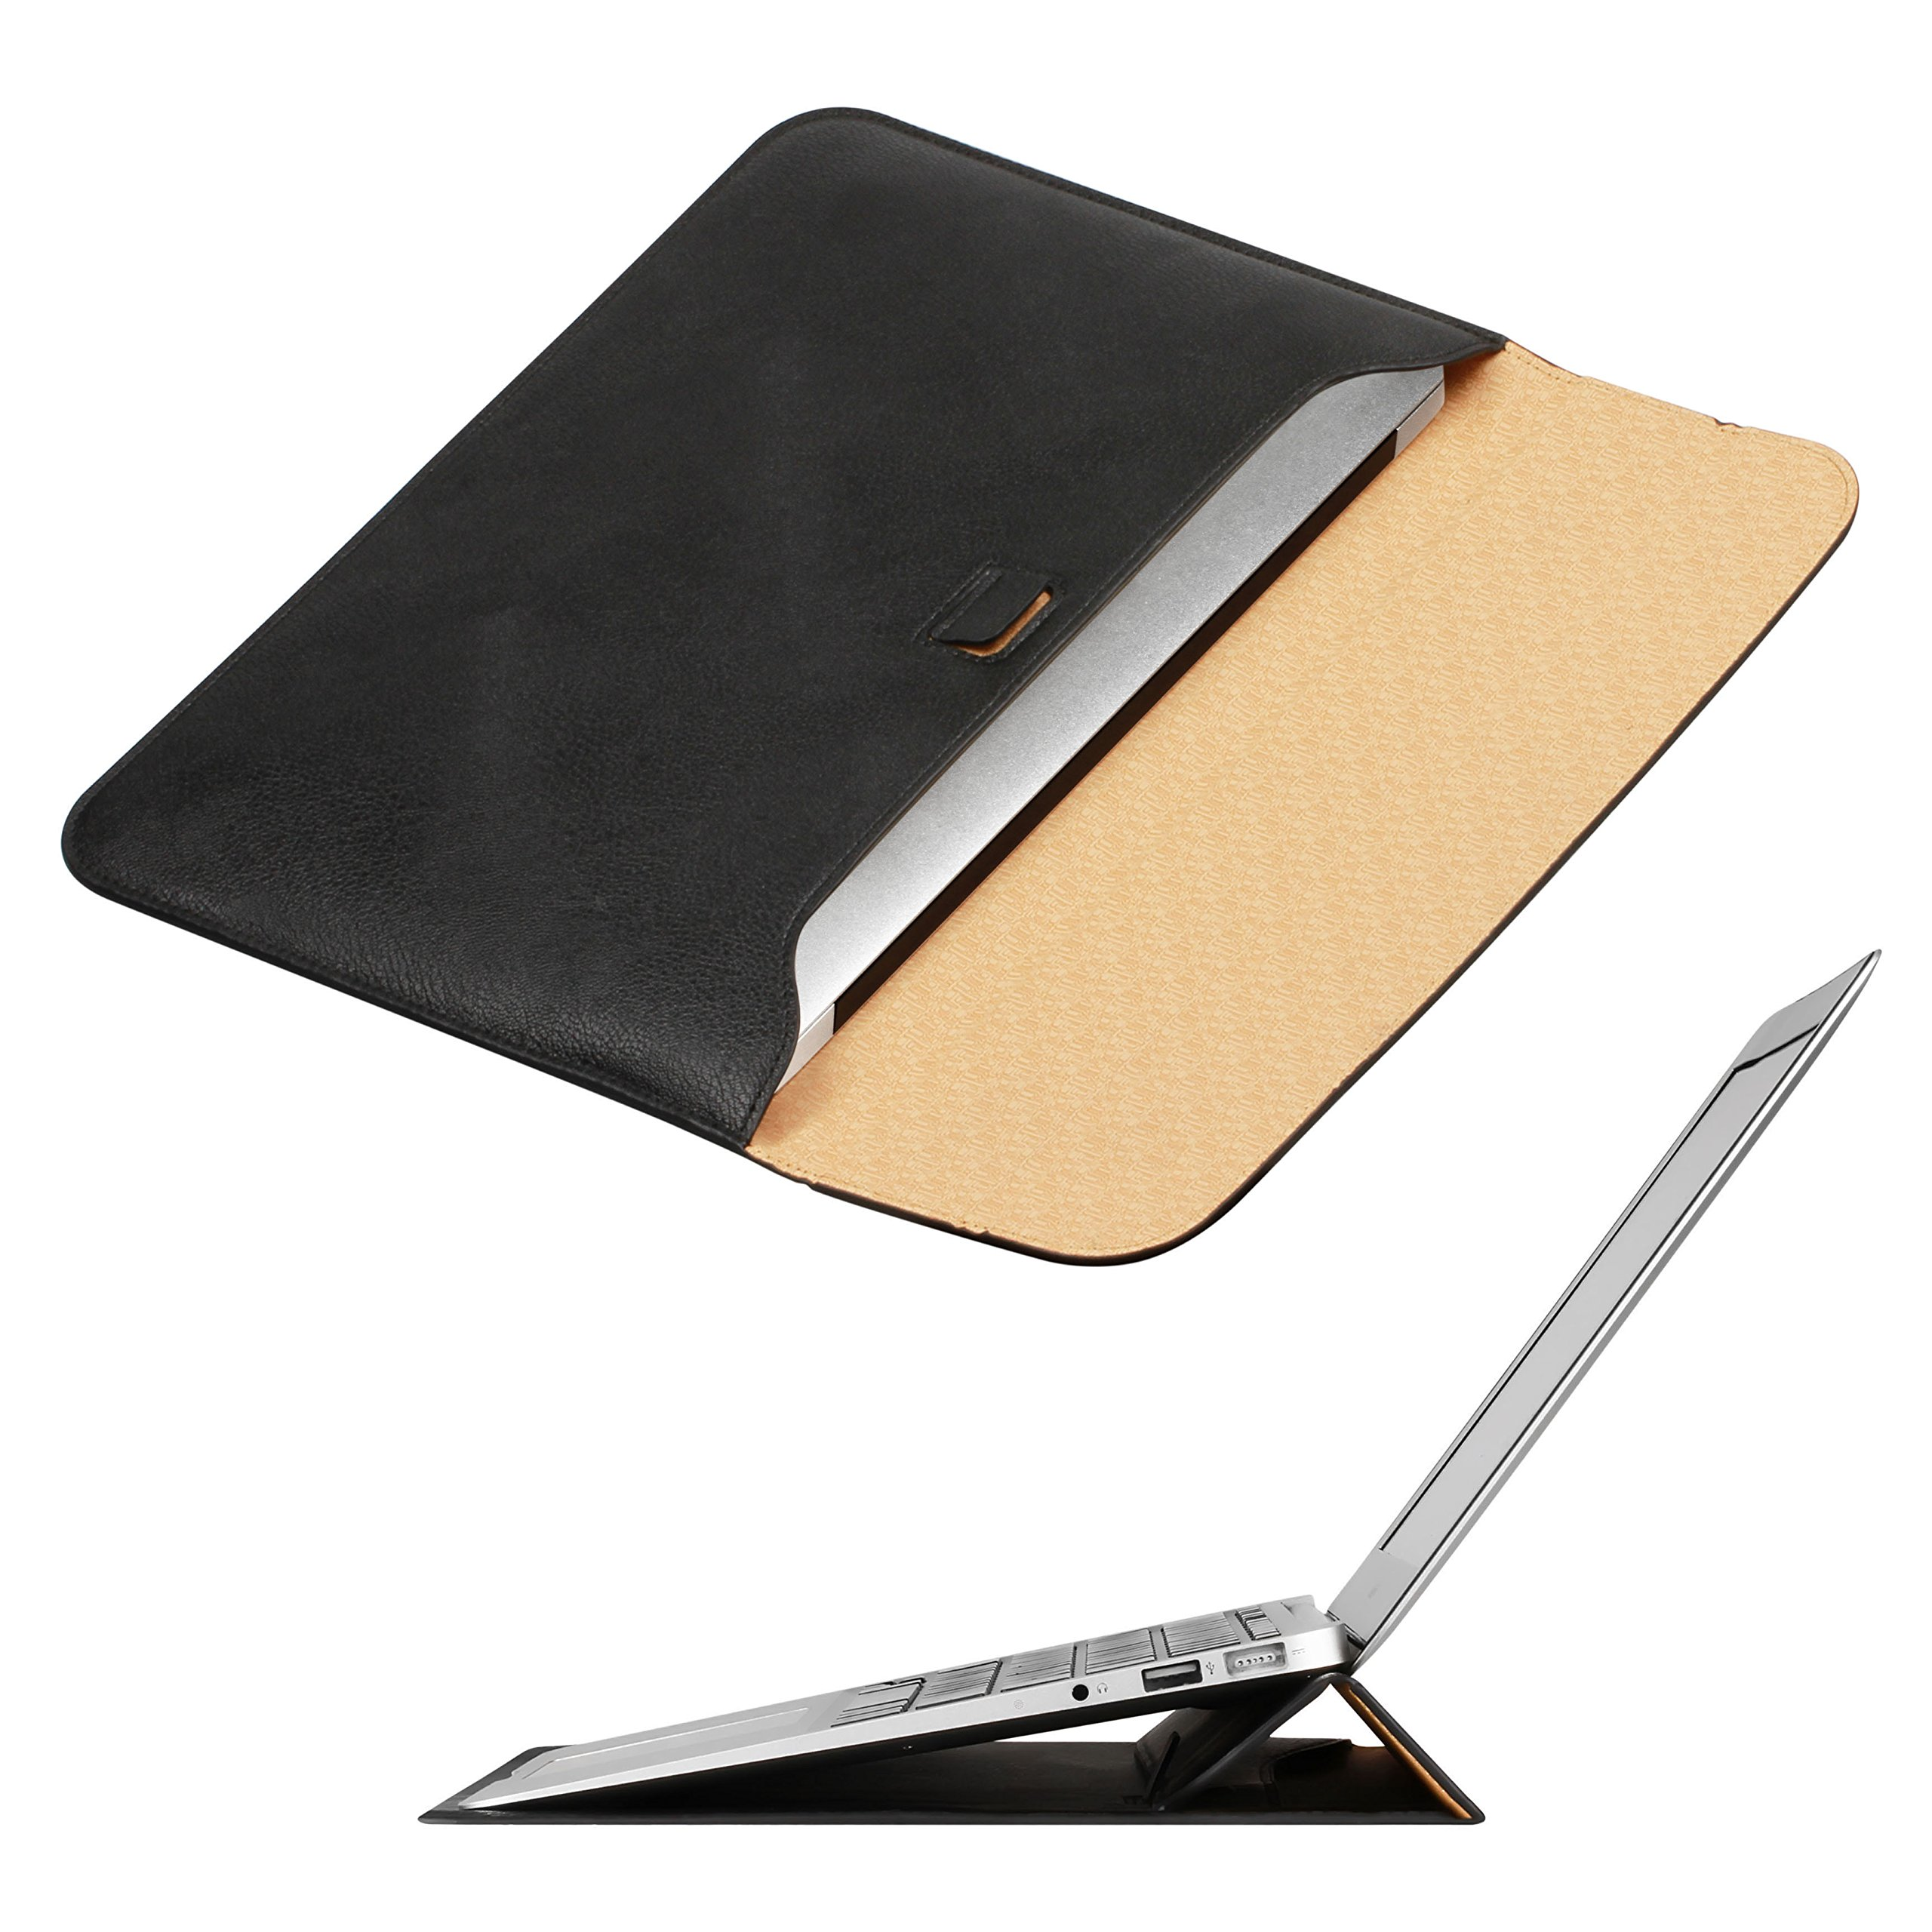 MacBook Air 13 inch Sleeve Case with Stand, OMOTON Laptop Case Sleeve for MacBook Air 13 inch, Slim Carrying Bag with Stand,Black